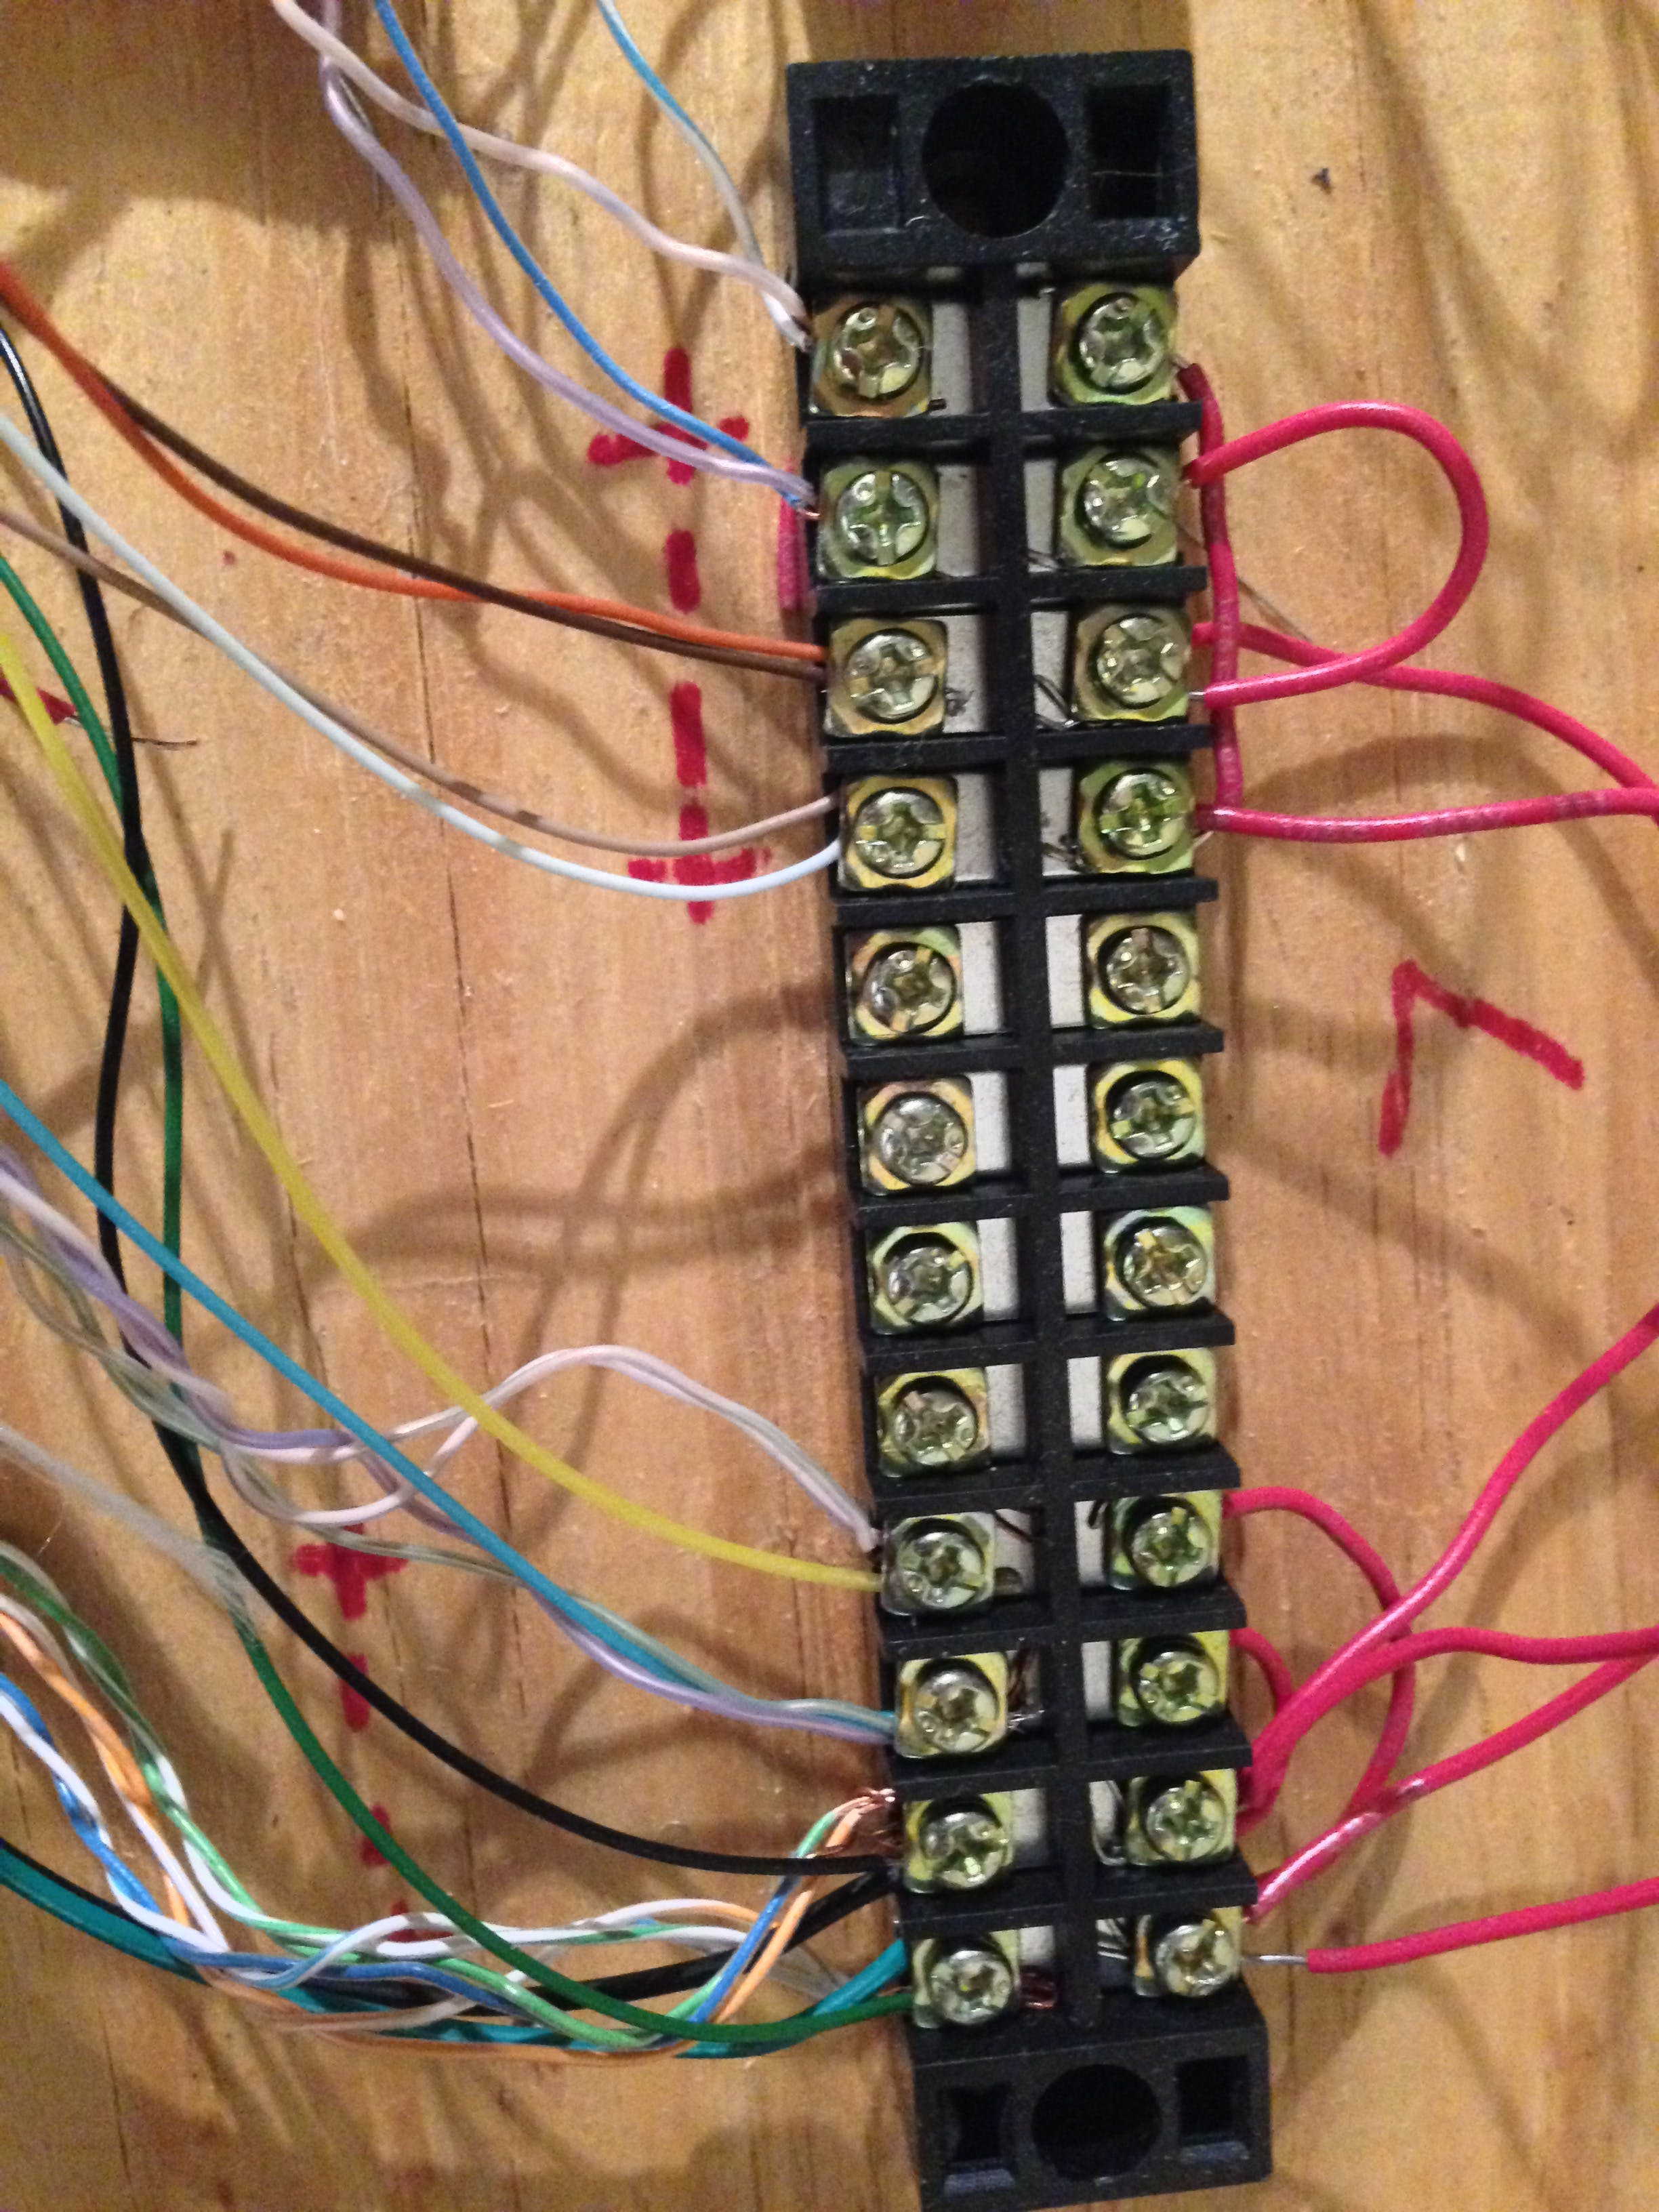 block terminal strip for lasers; all of these cables lead to one +/- pair for control